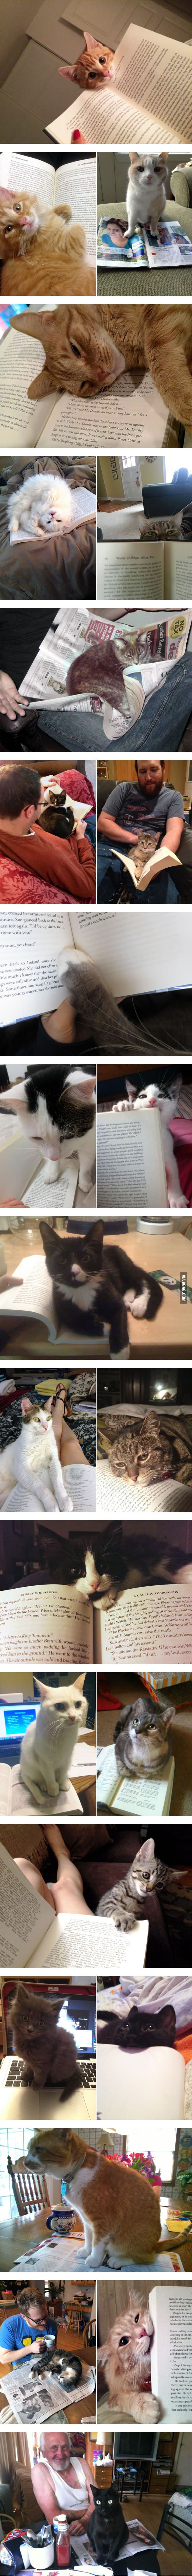 25 Cats That Have No Intention of Letting You Read                                                                                                                                                                                 More                                                                                                                                                                                 More